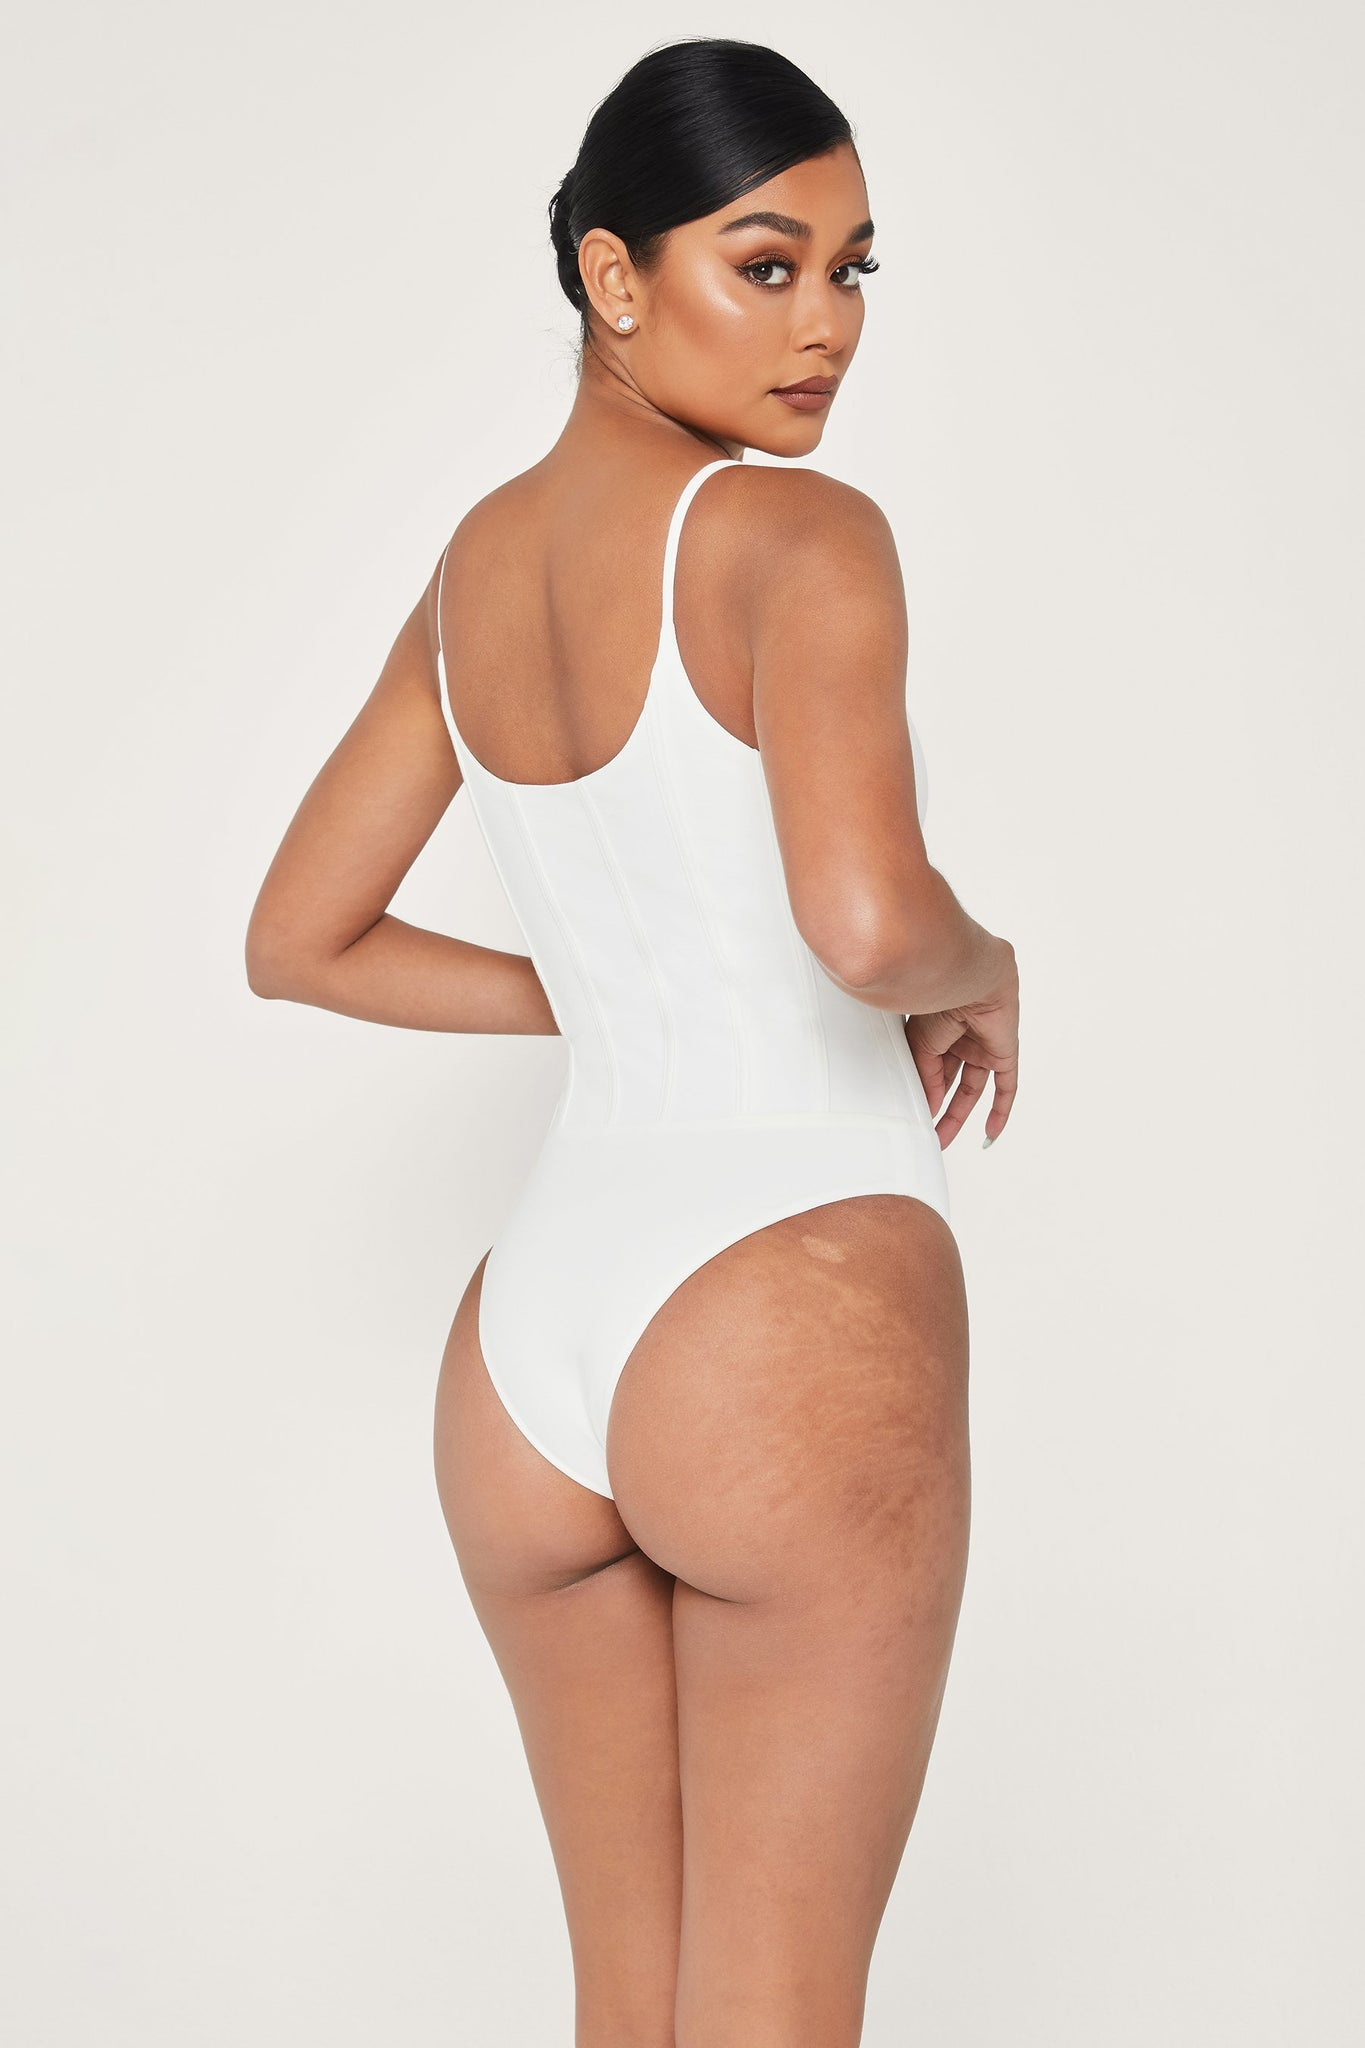 Elvina Panelled Bodysuit - White - MESHKI